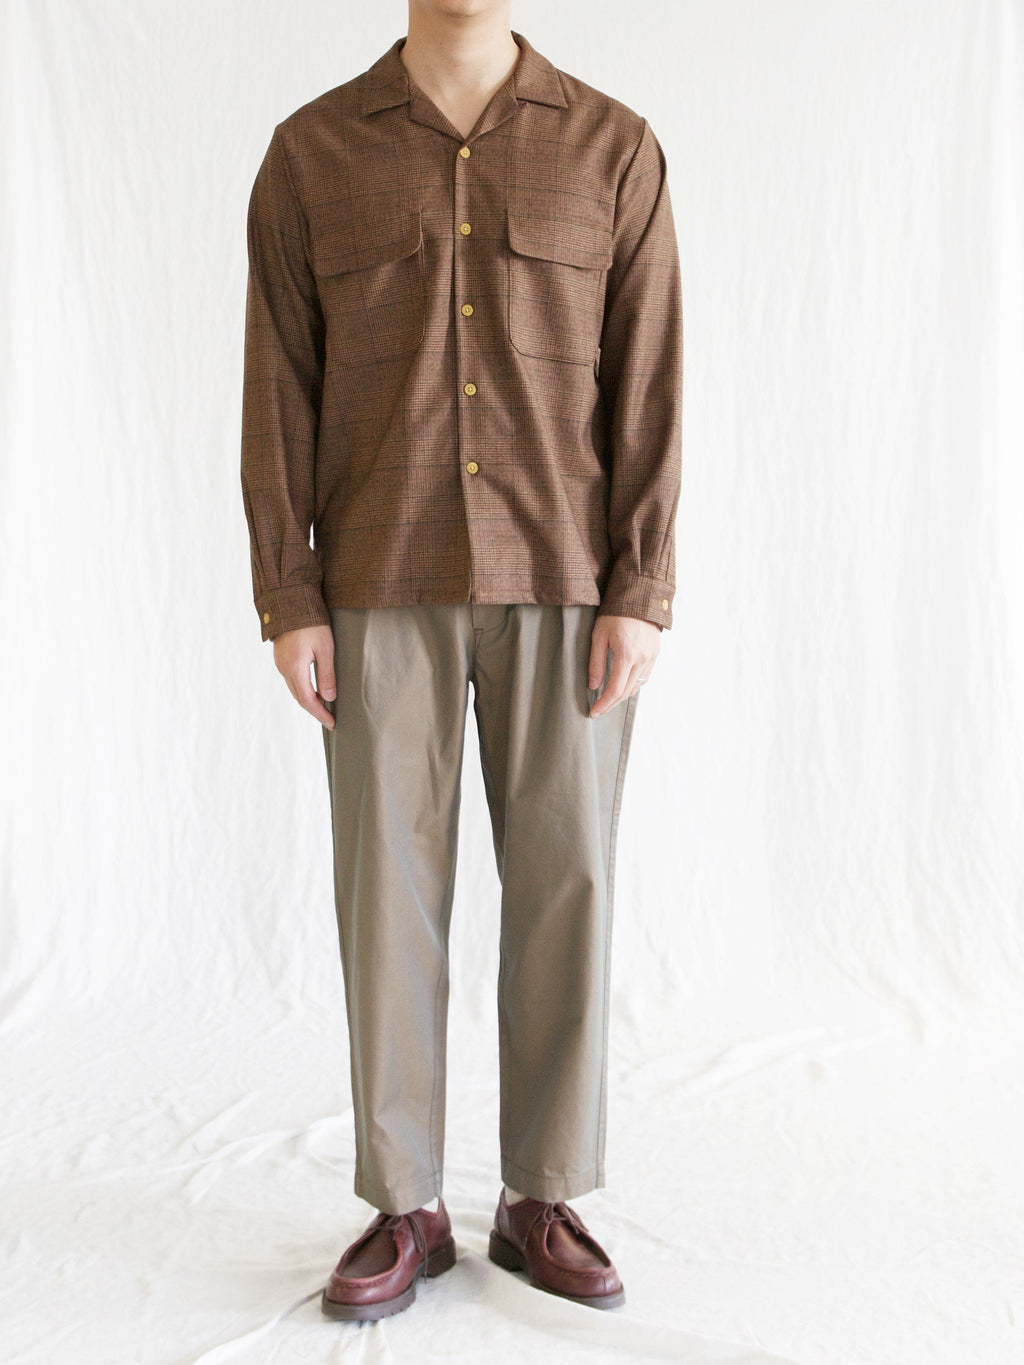 Namu Shop - Eastlogue Holiday Pants - Olive Solaro